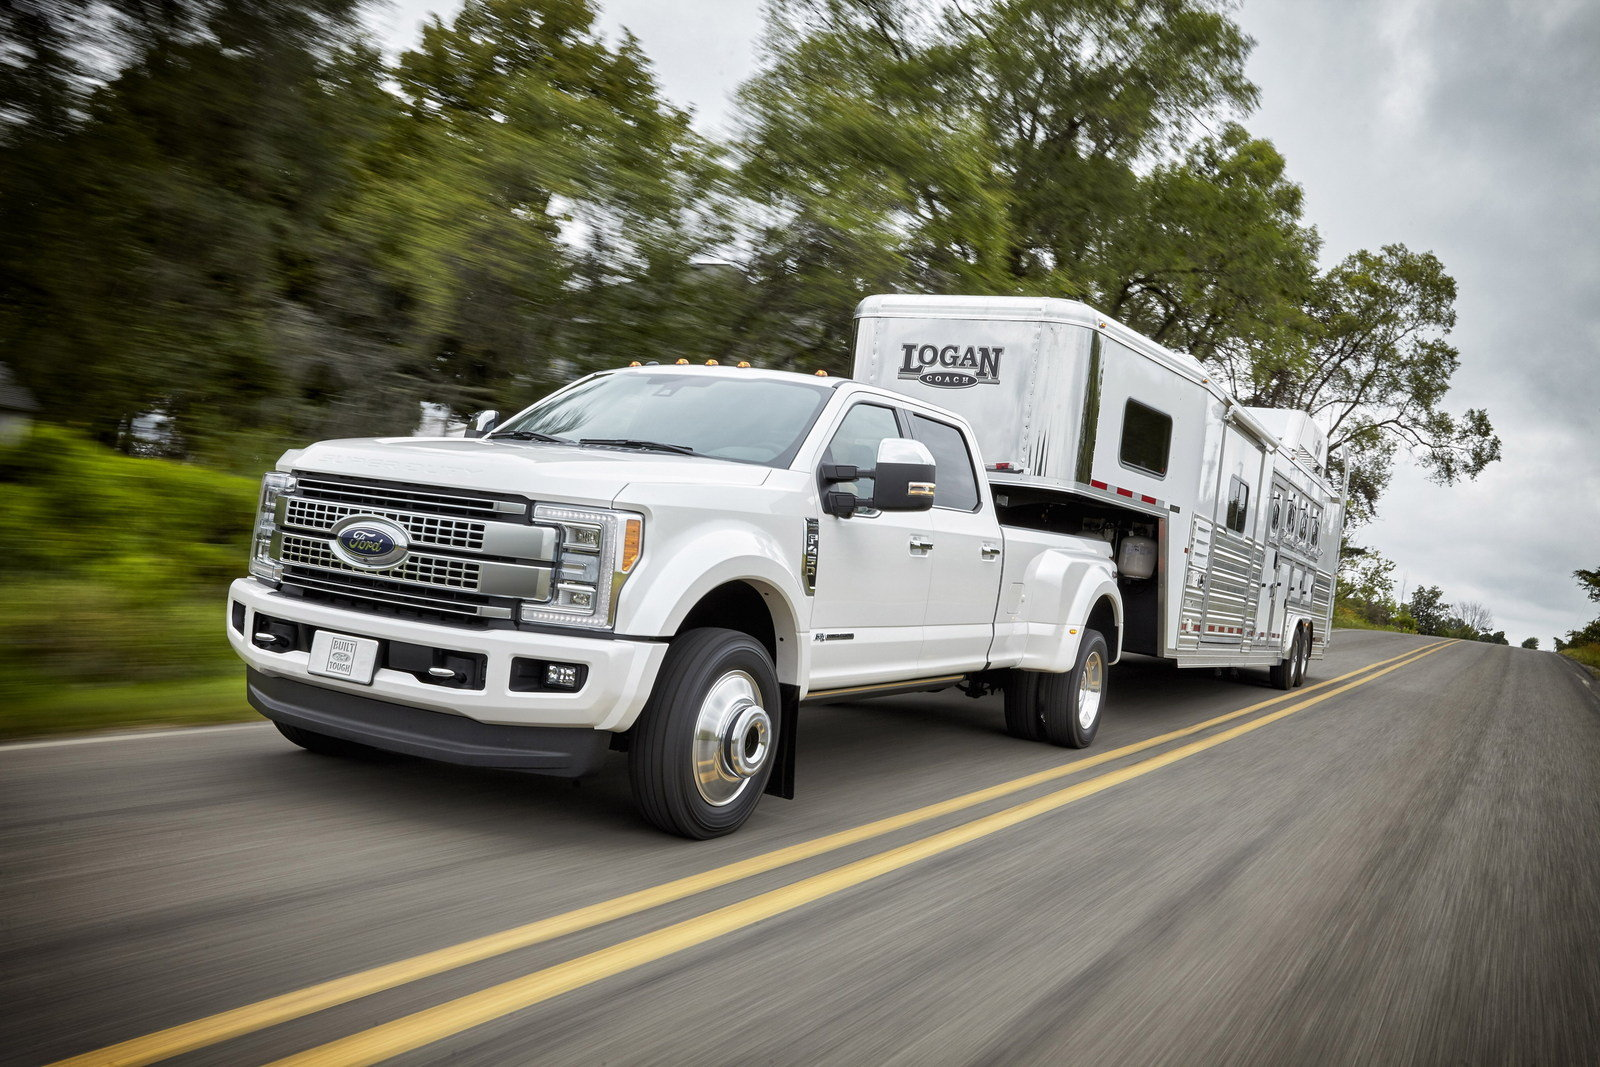 2017 ford super duty picture 648429 truck review top speed. Black Bedroom Furniture Sets. Home Design Ideas